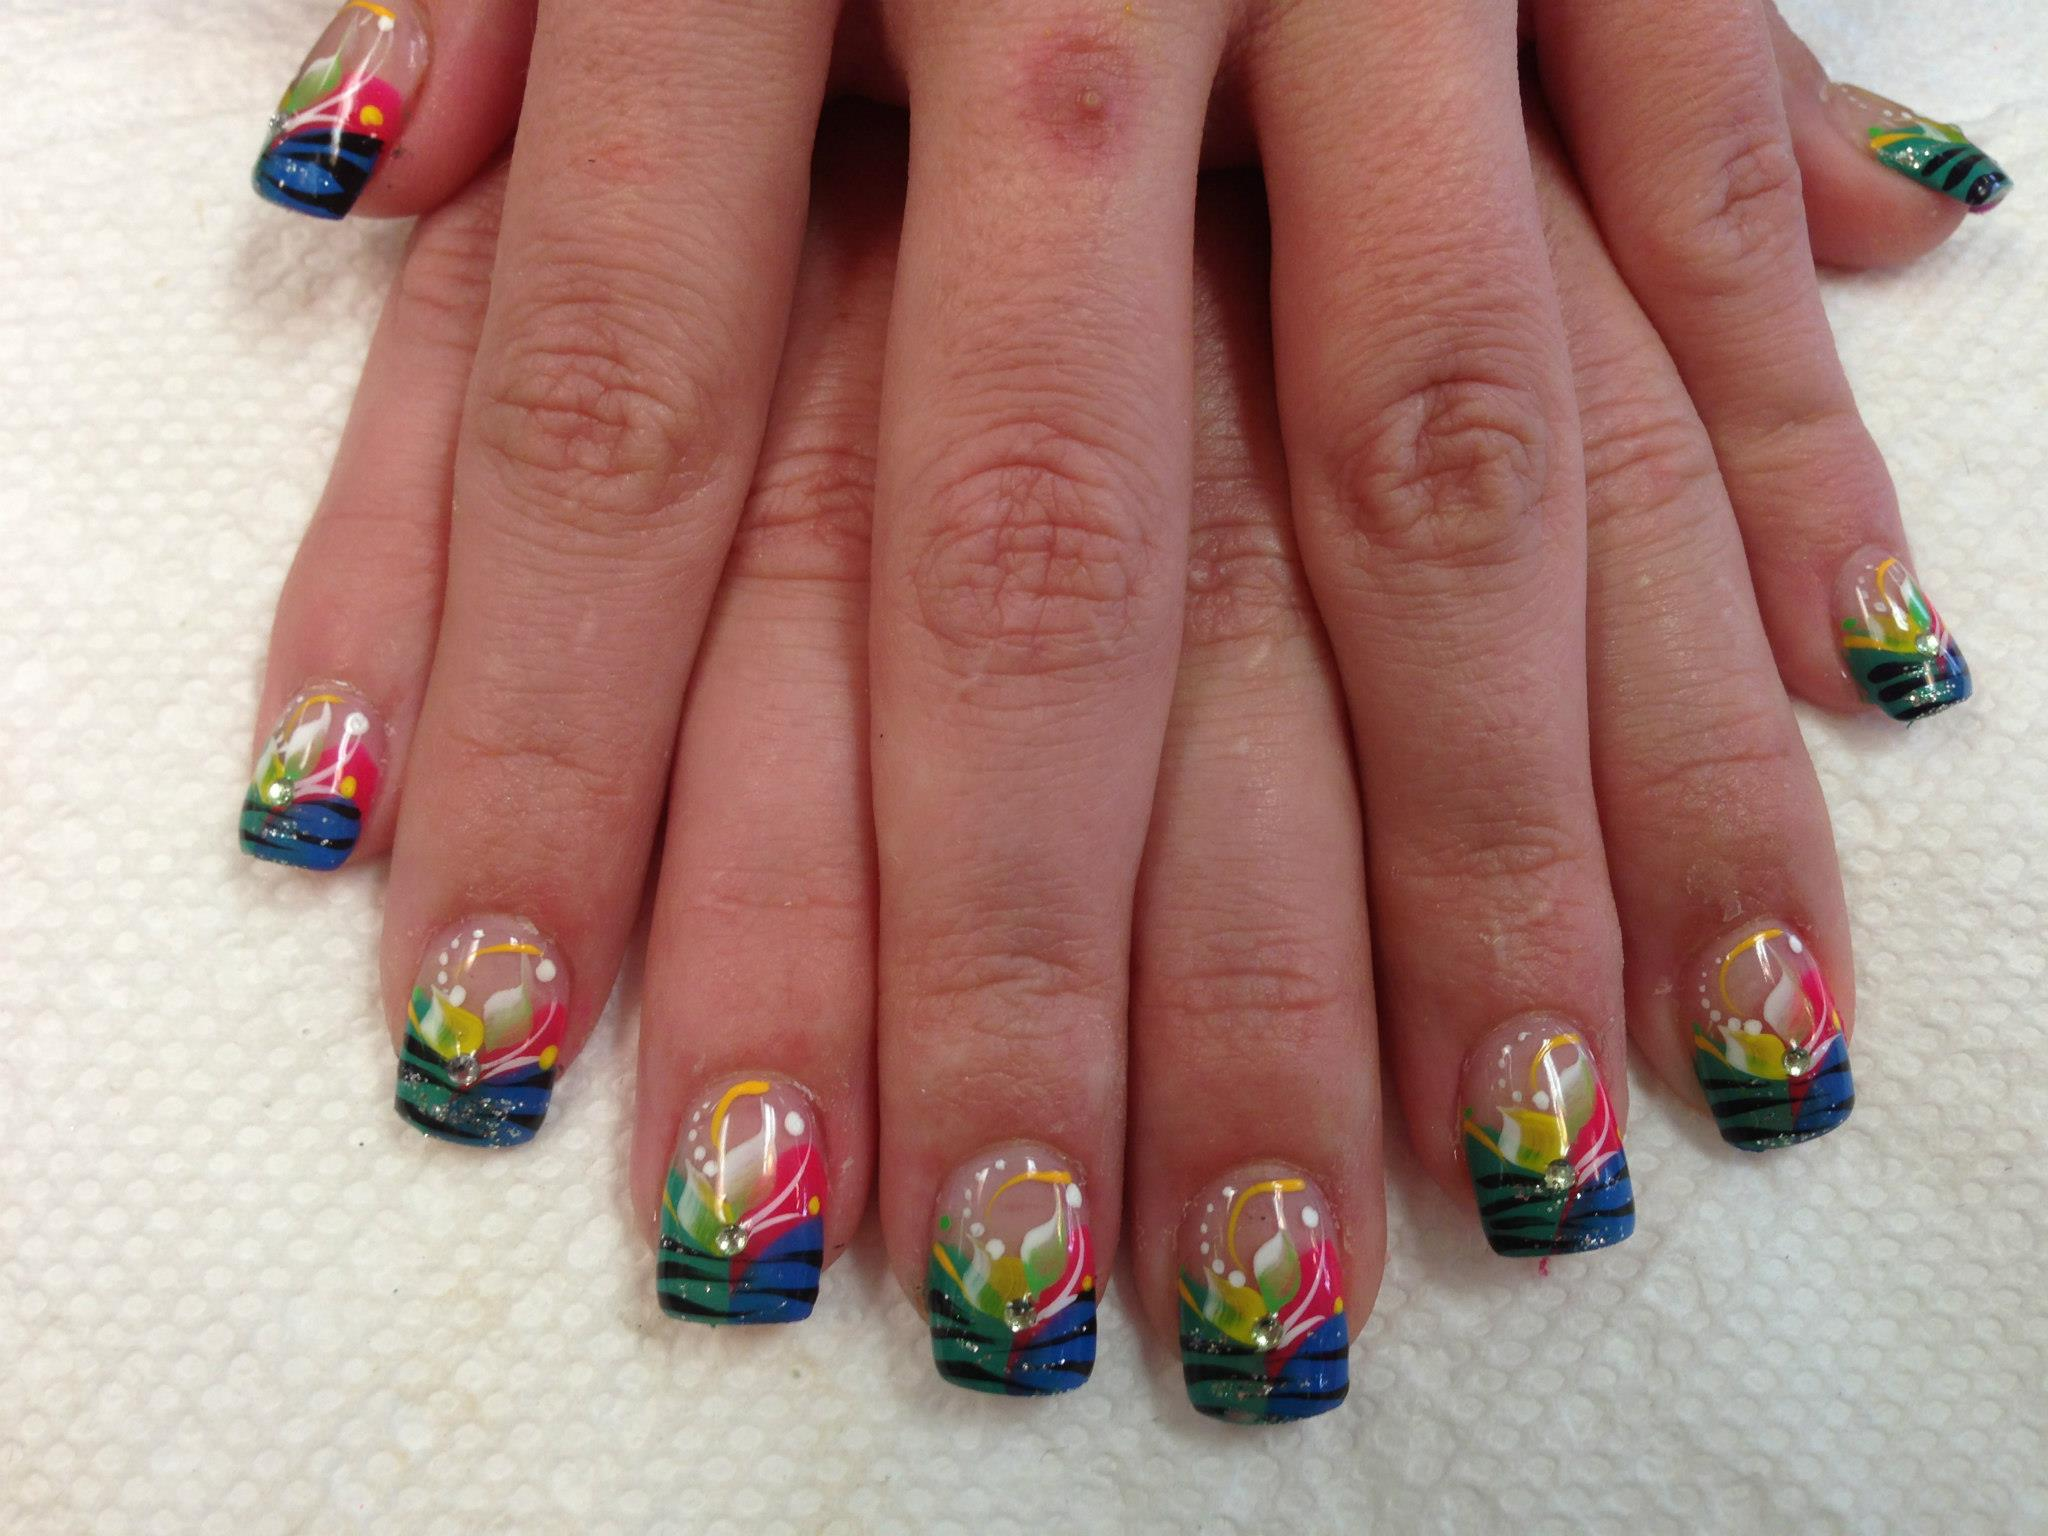 Tiger Stripe Fun, nail art designs by Top Nails, Clarksville TN ...